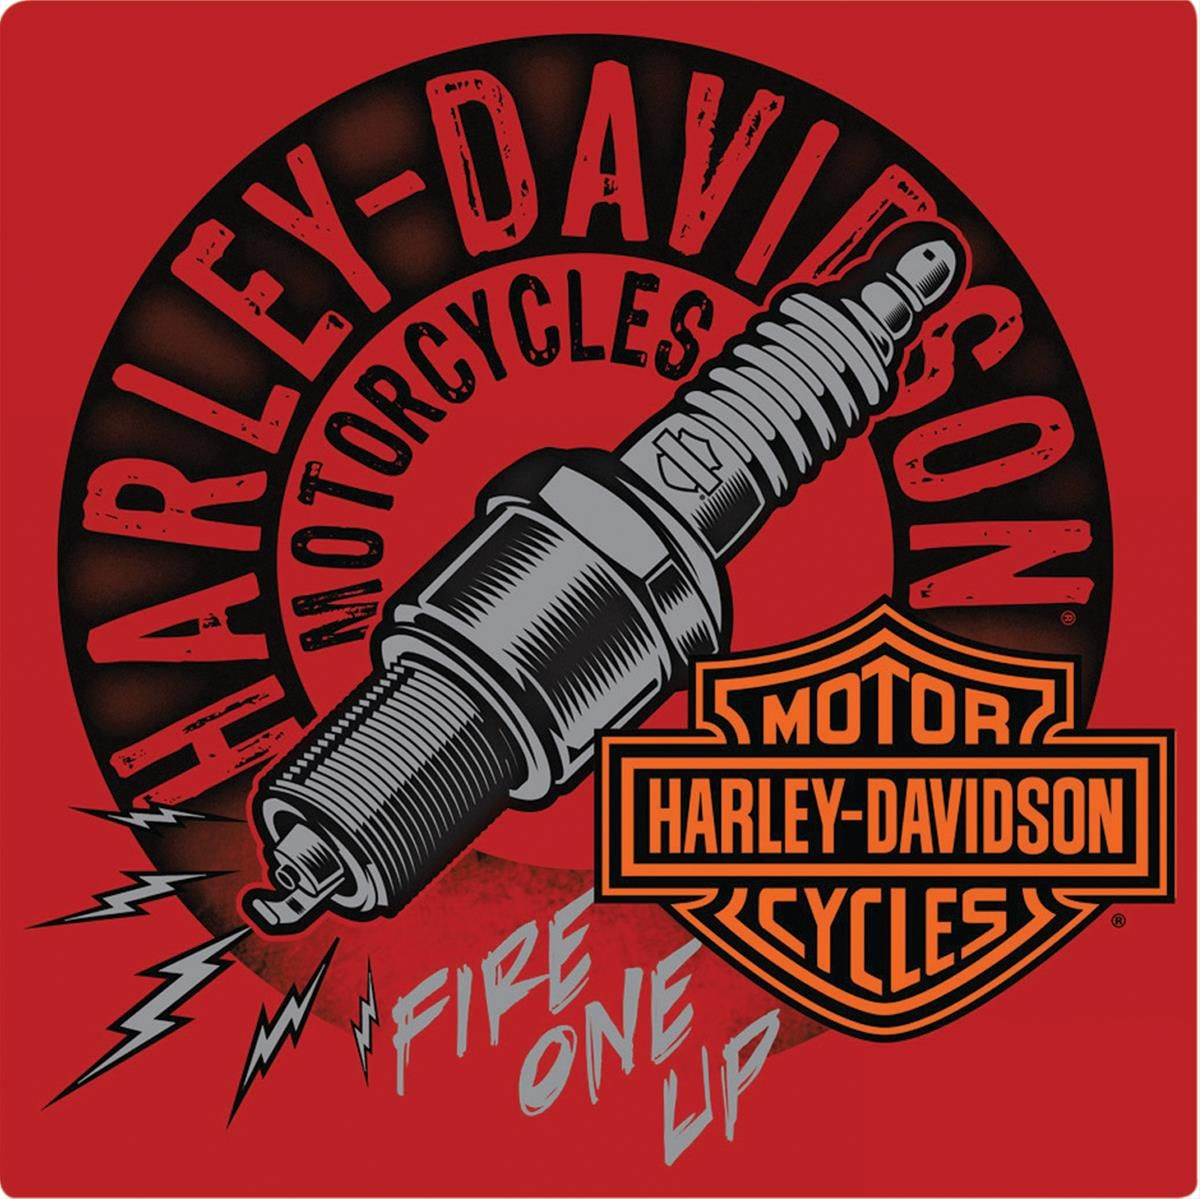 HarleyDavidson® Fire One Up Metal Sign Free Shipping on